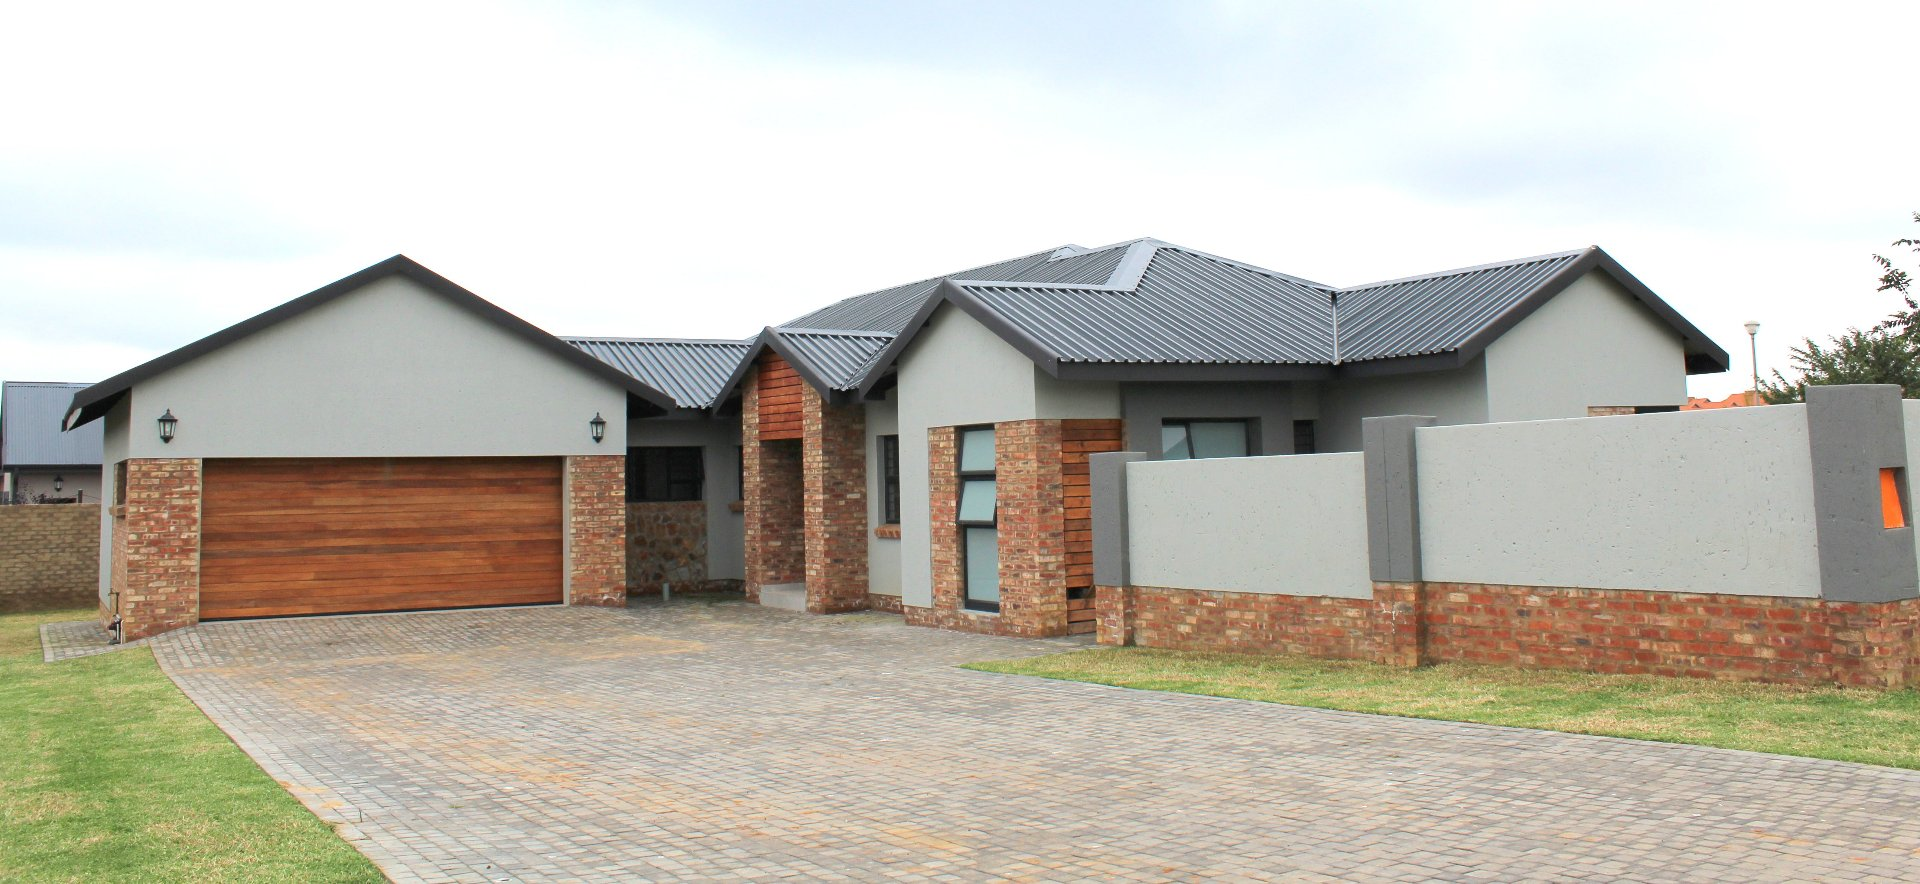 Potchefstroom, Lifestyle Estate Property  | Houses For Sale Lifestyle Estate, Lifestyle Estate, House 3 bedrooms property for sale Price:2,530,000